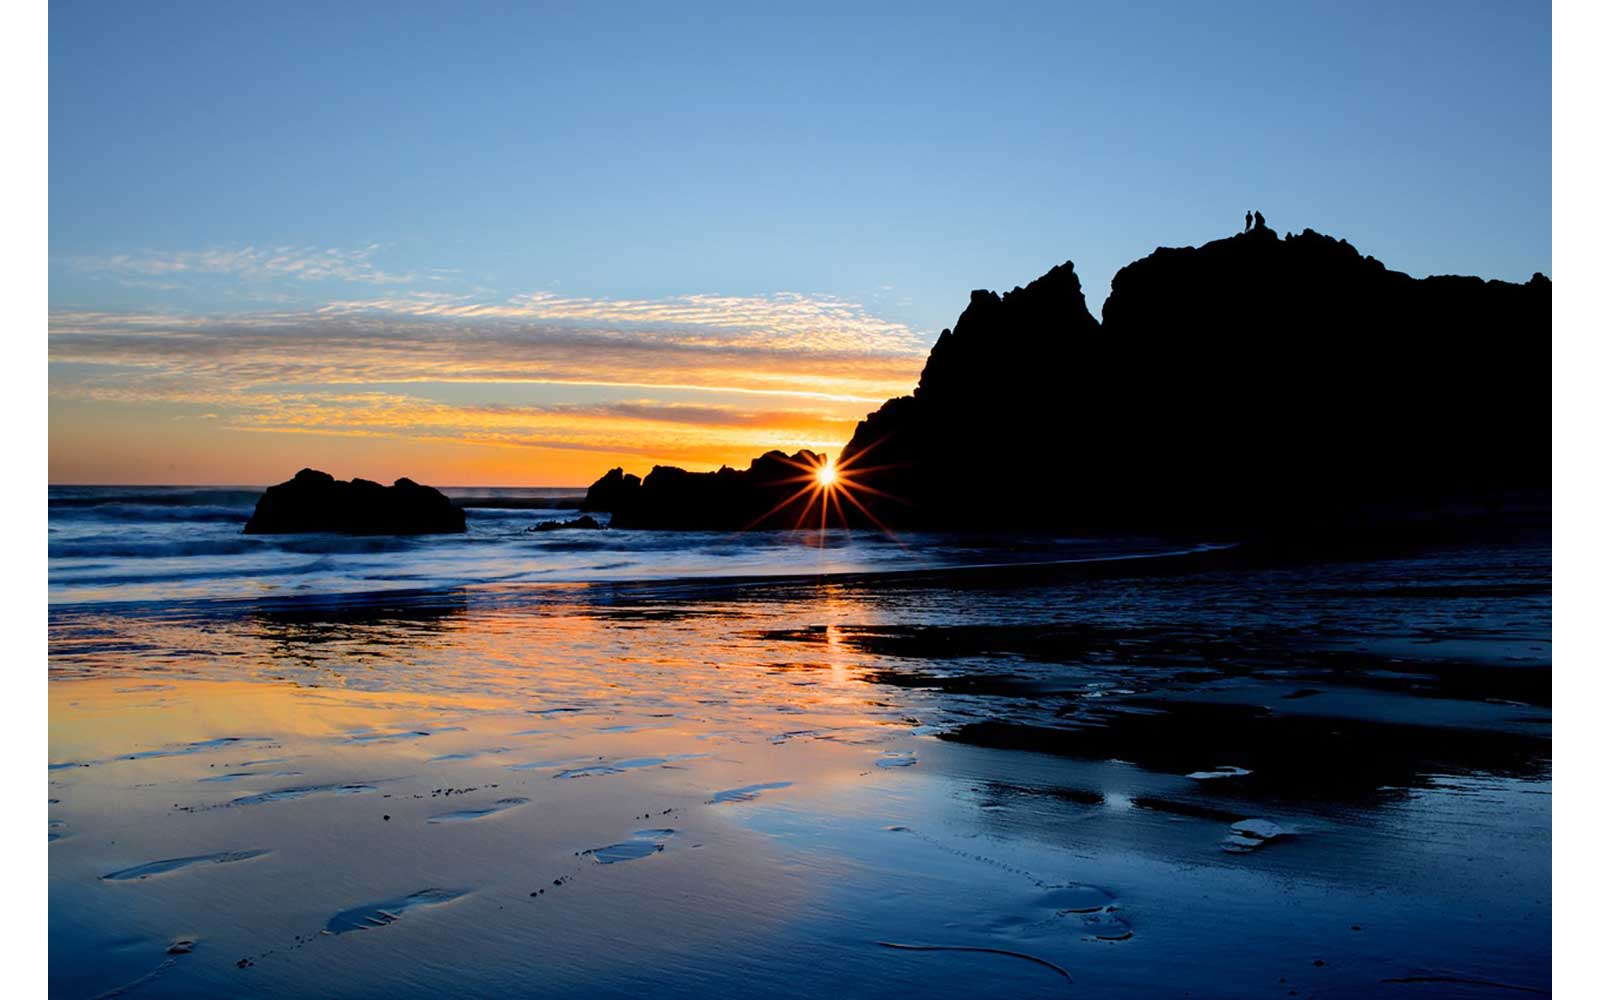 Sunset at Big Sur, California